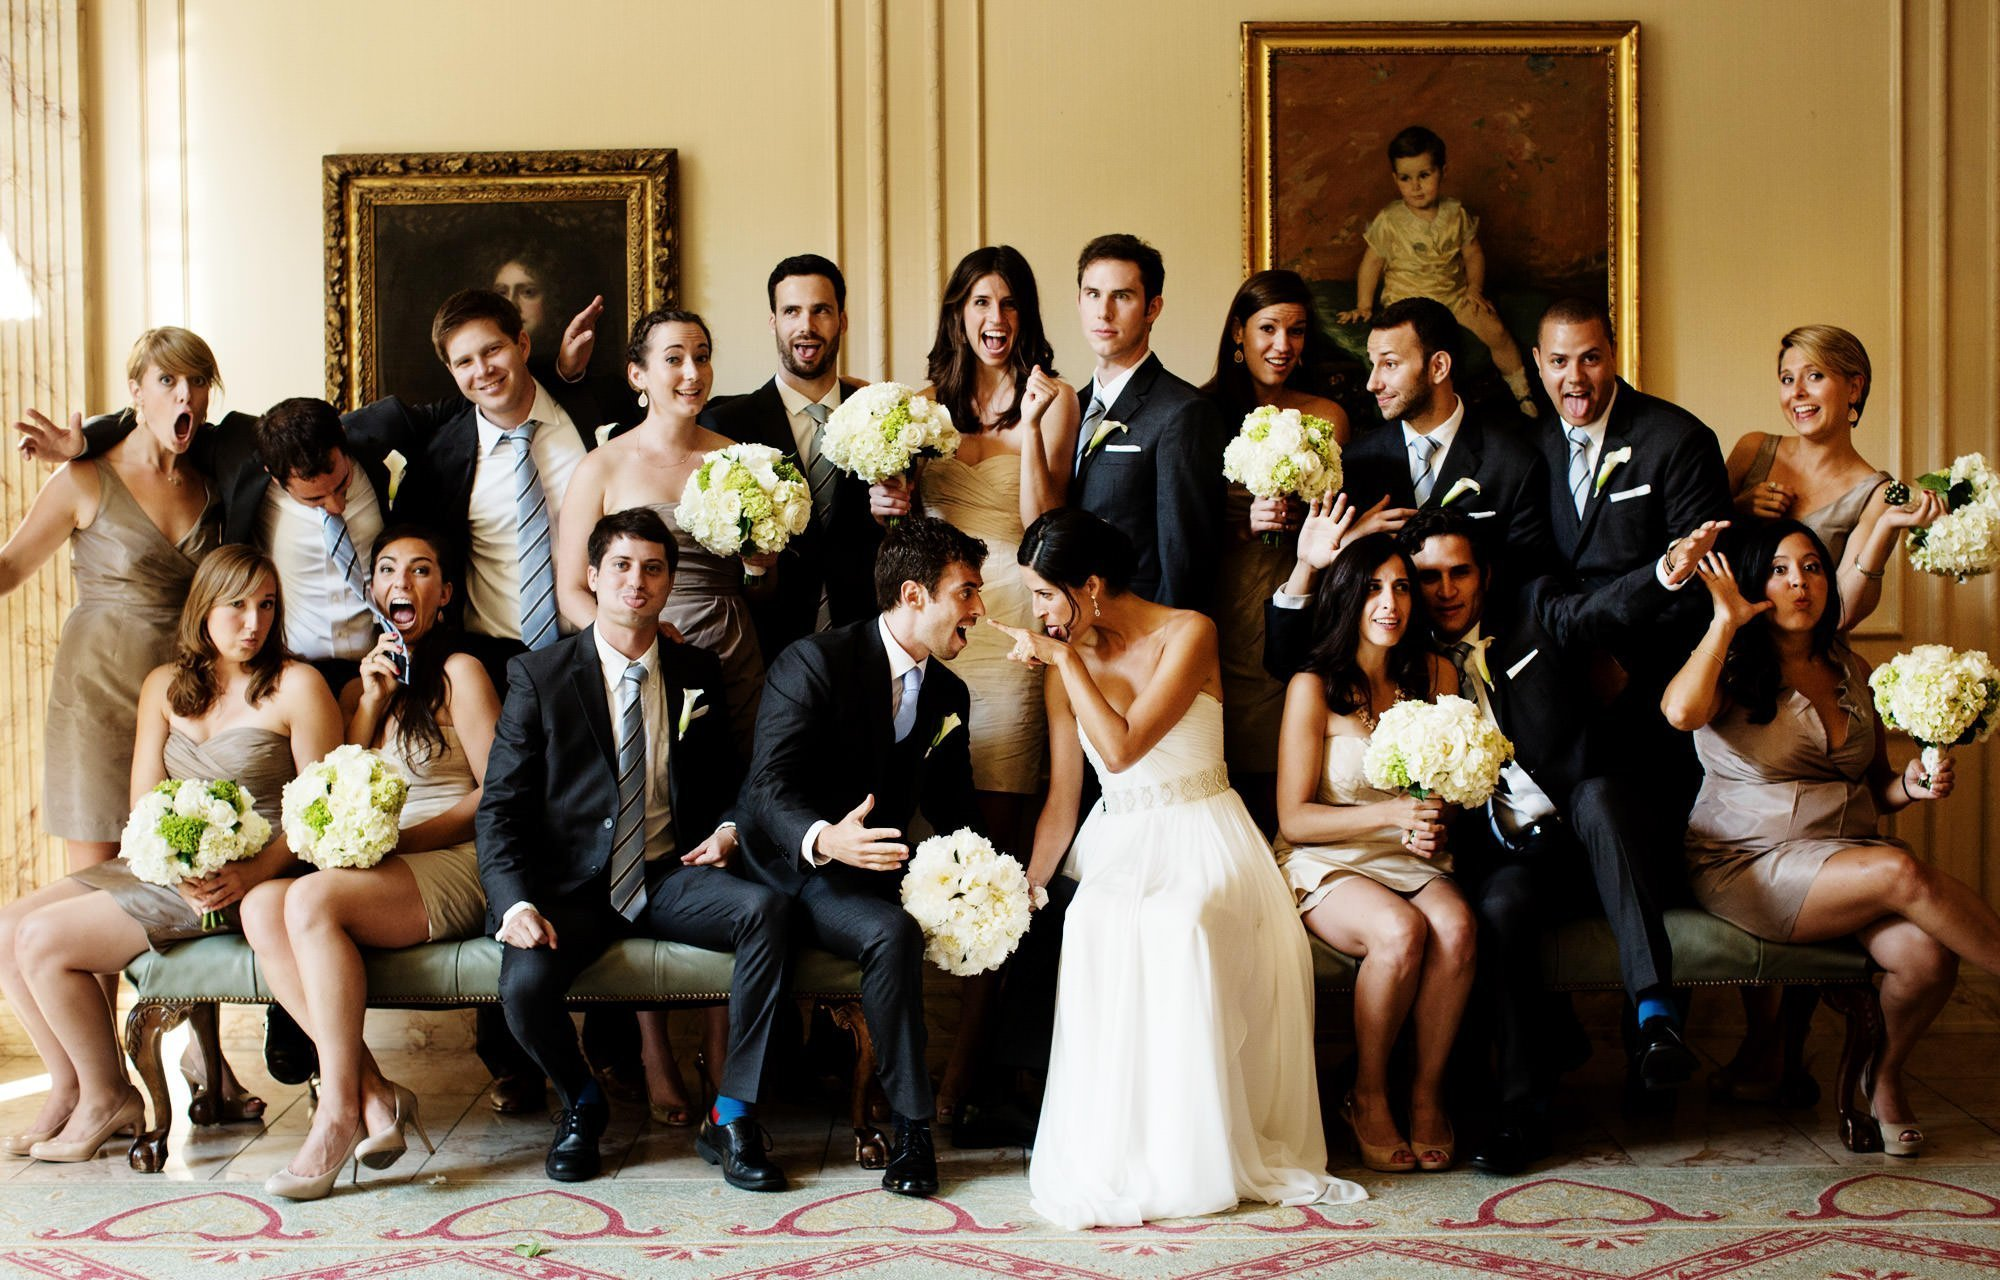 NMWA Weddings I A portrait of the wedding party.